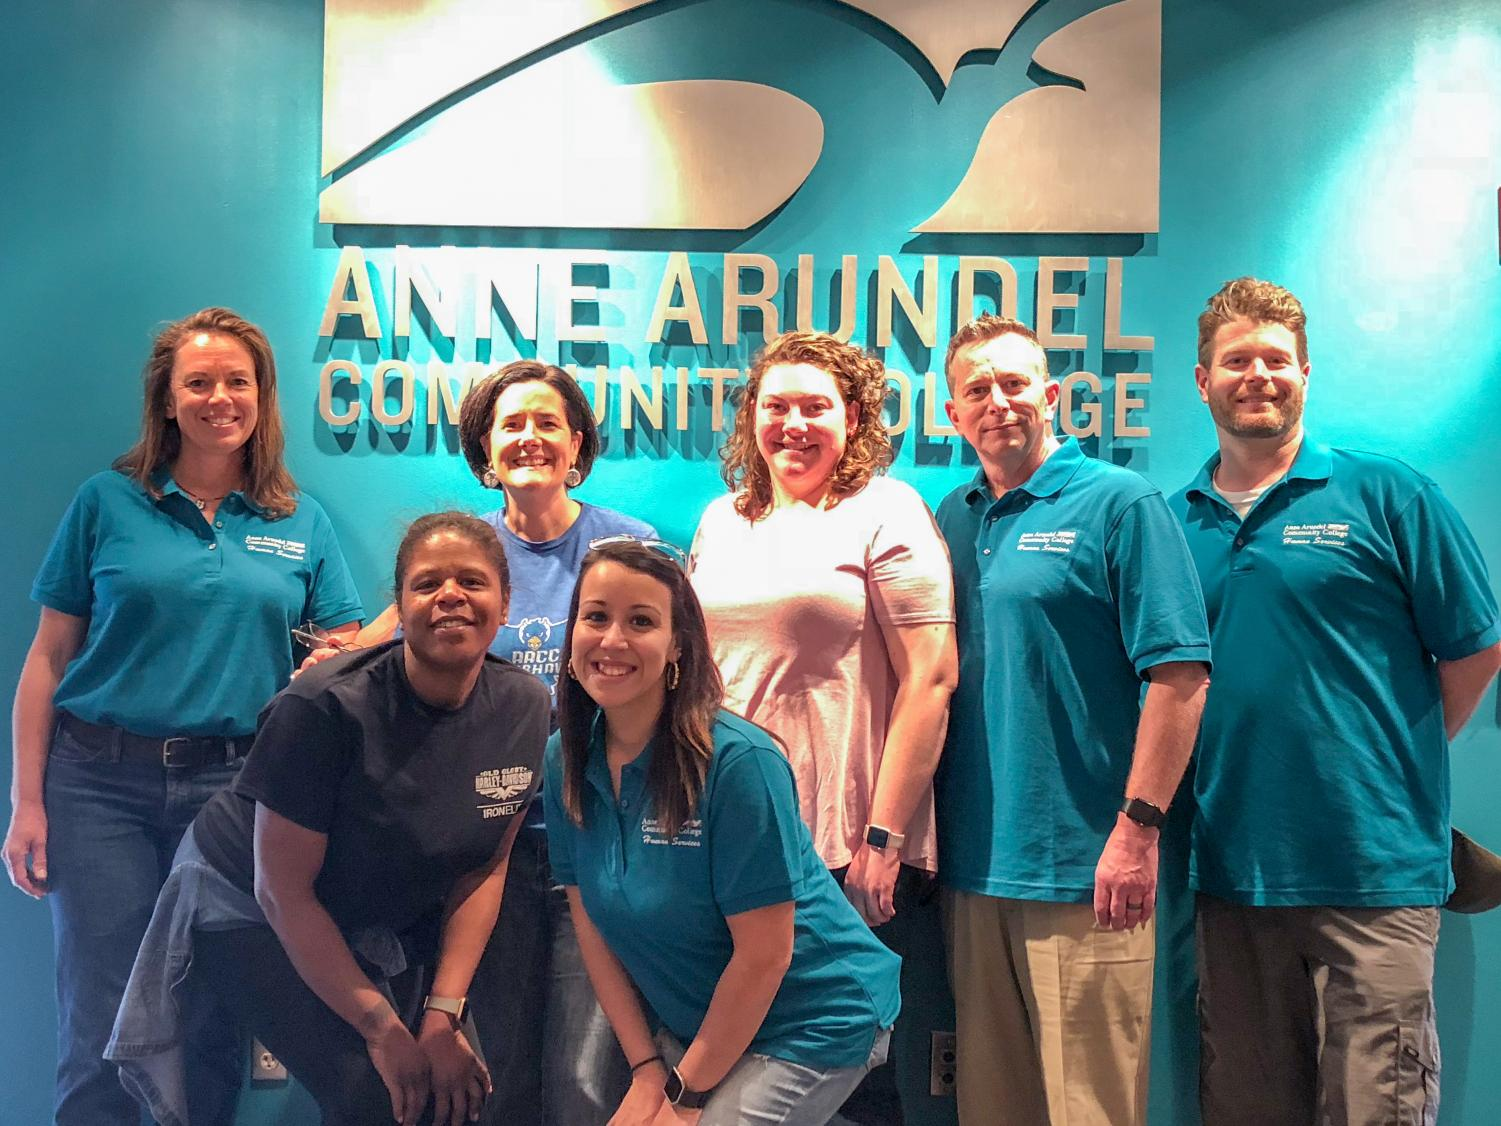 Human services students from AACC volunteered to help the college host the Mid-Atlantic Consortium for Human Services' 2018 conference.